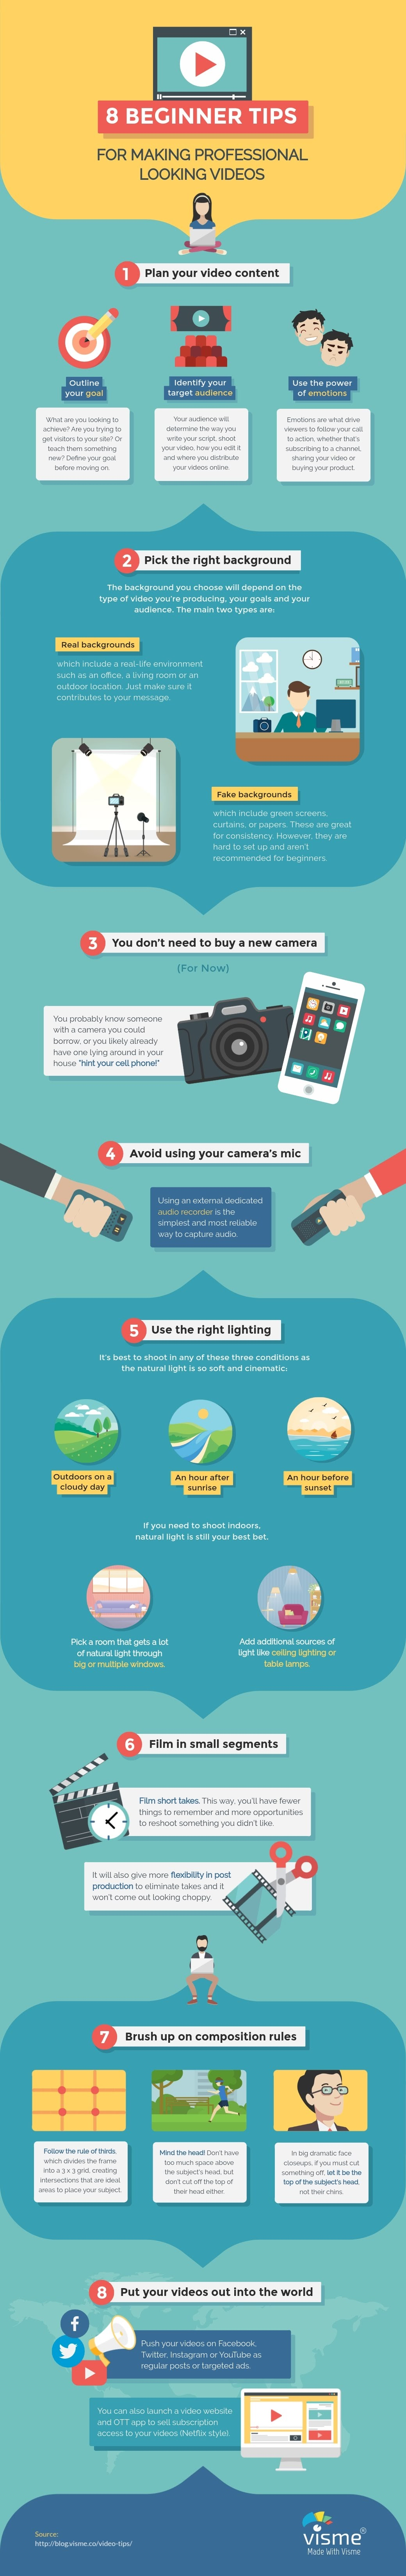 8 Beginner Tips for Making Professional-Looking Videos - #infographic